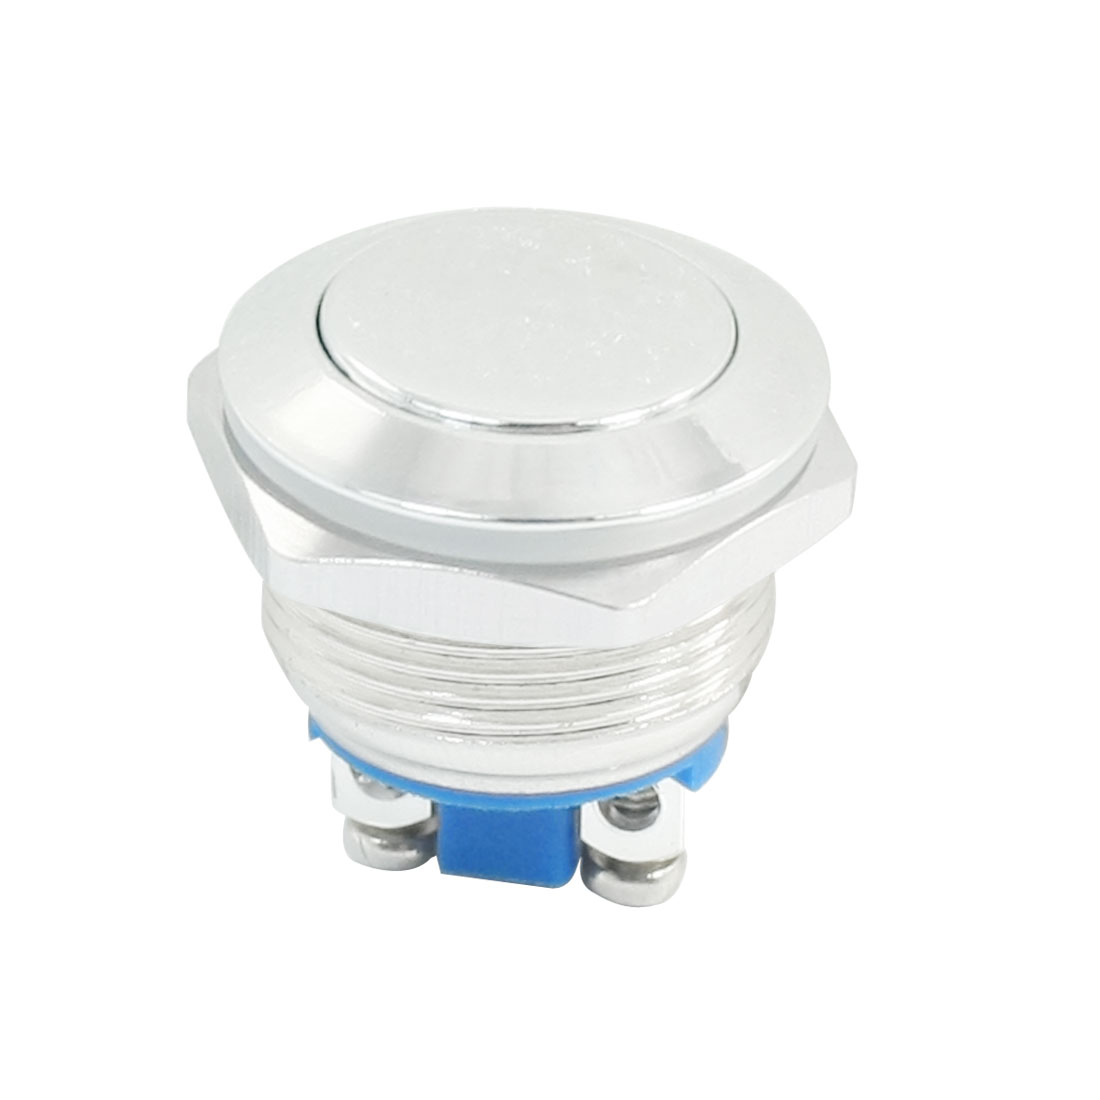 19mm Flush Mounted Momentary SPST Round Flat Metal Push Button Switch